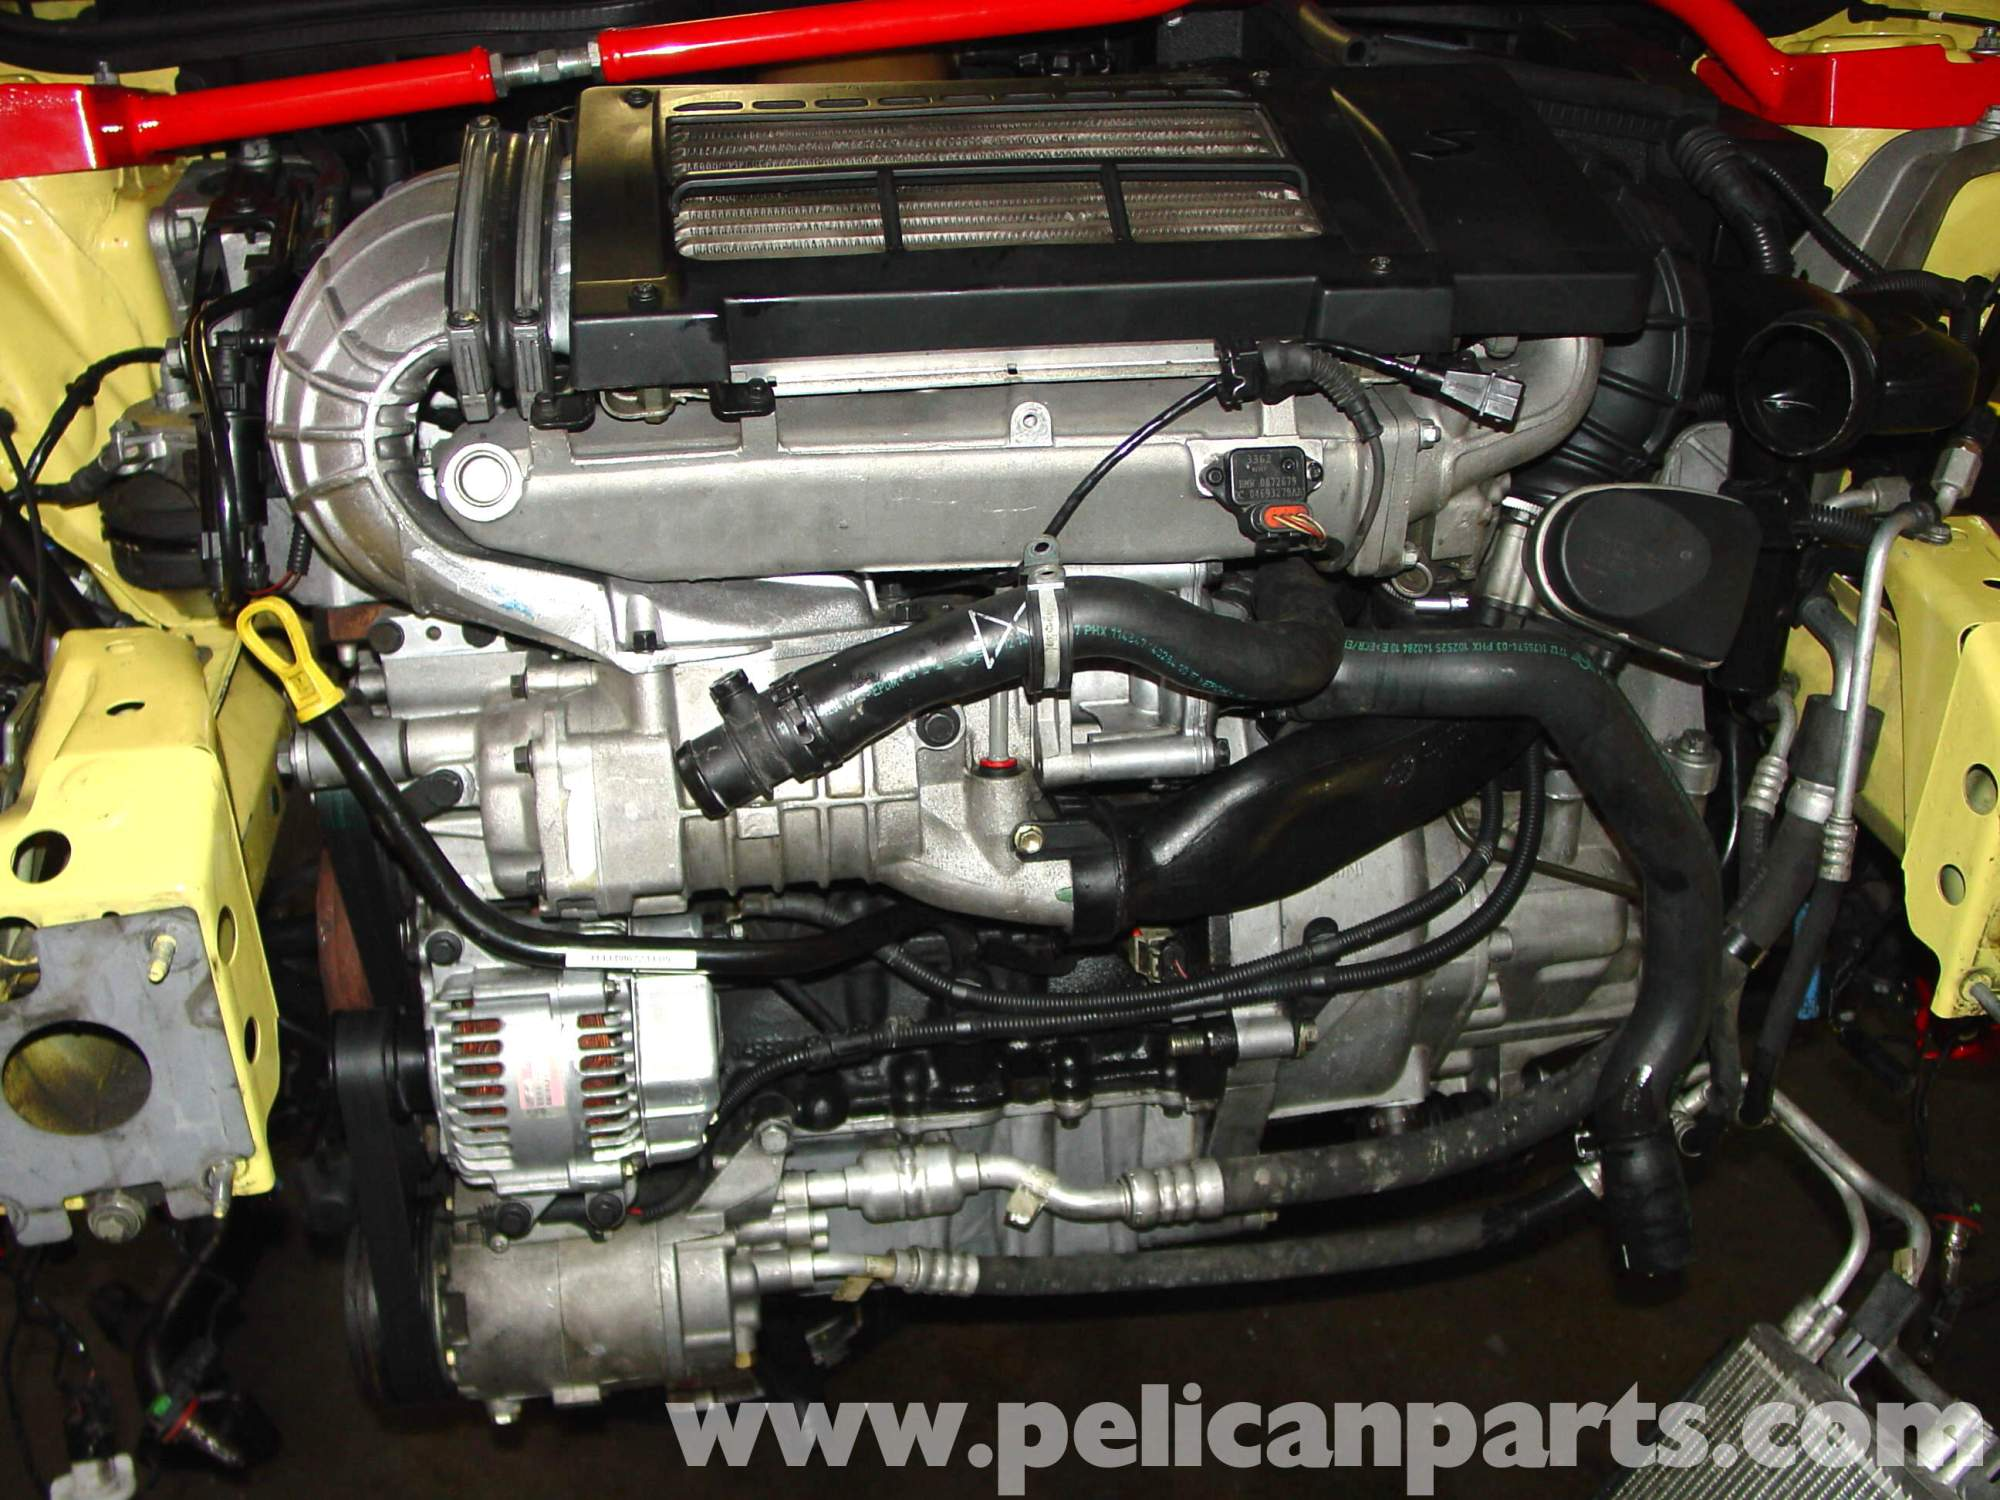 hight resolution of 2002 mini cooper s engine parts diagram wiring diagram2002 mini cooper s engine parts diagram